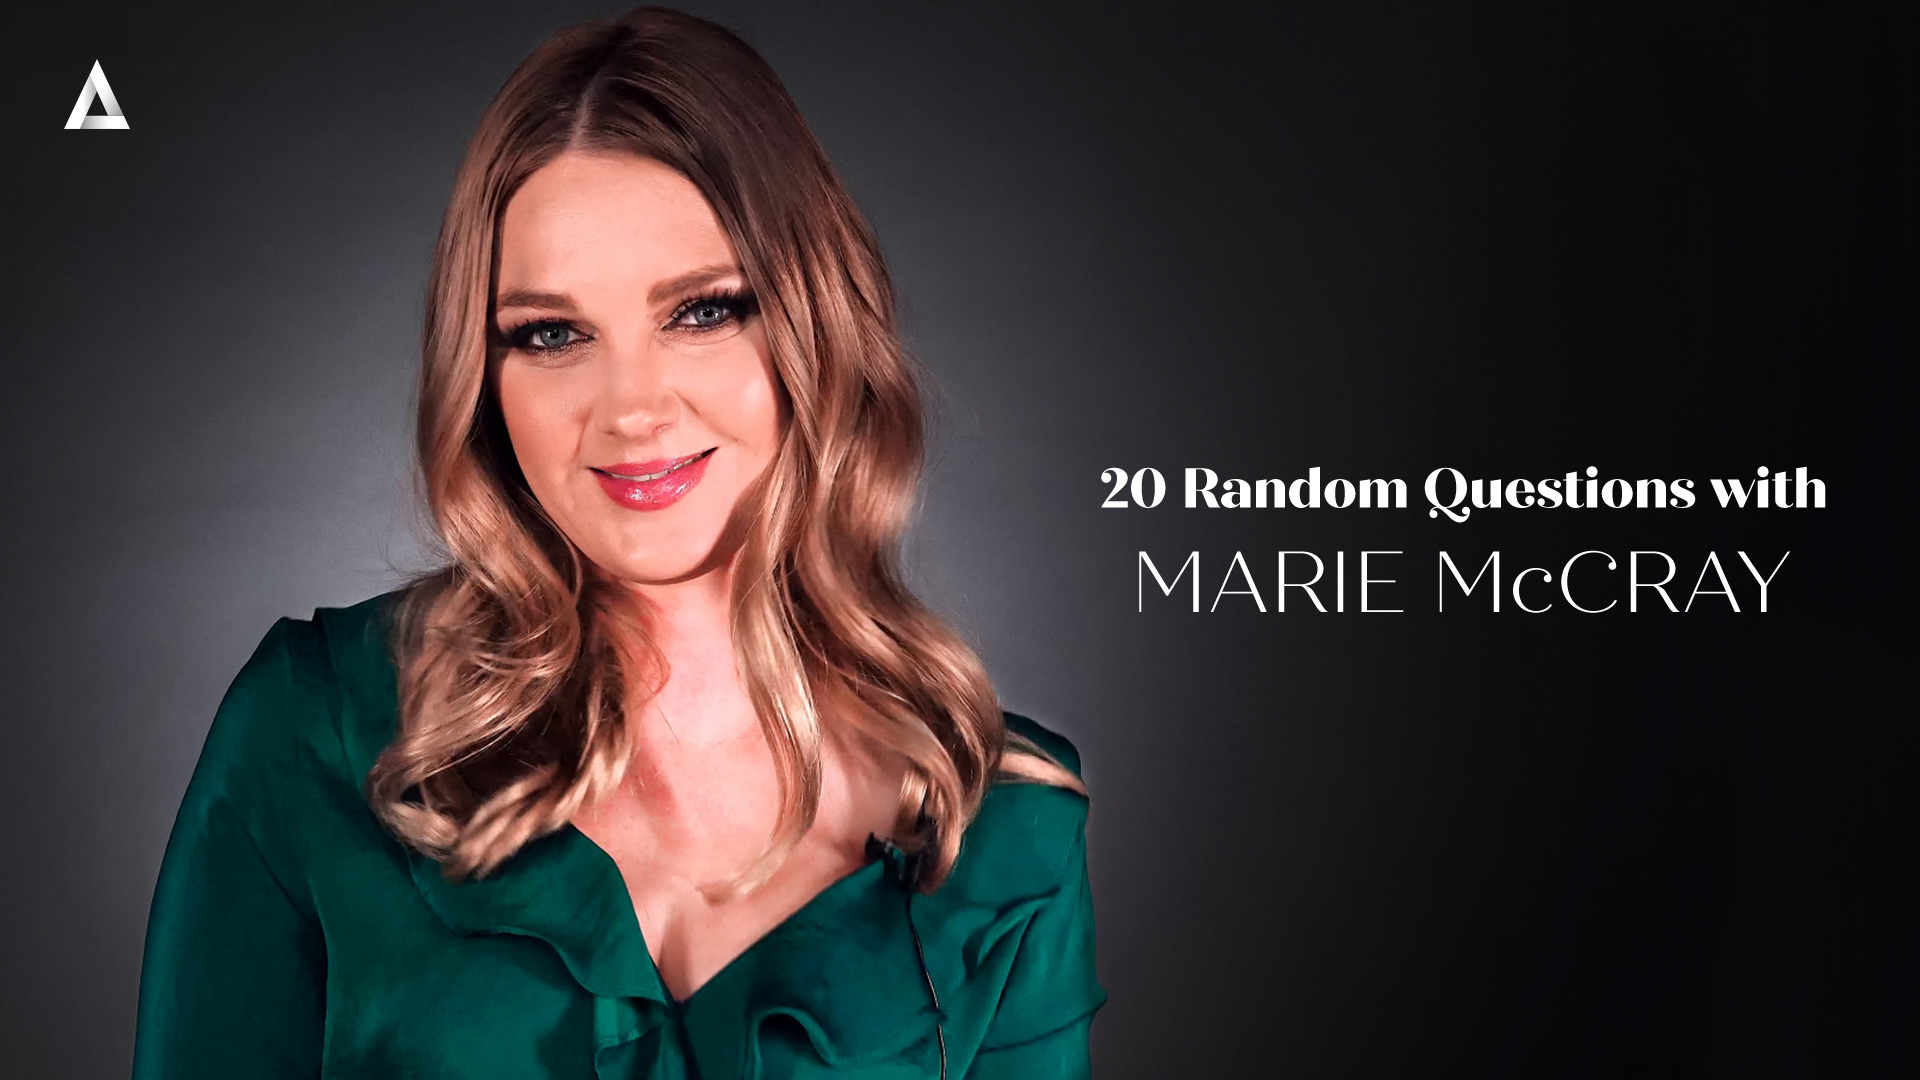 20 Random Questions with Marie McCray - Marie McCray 1